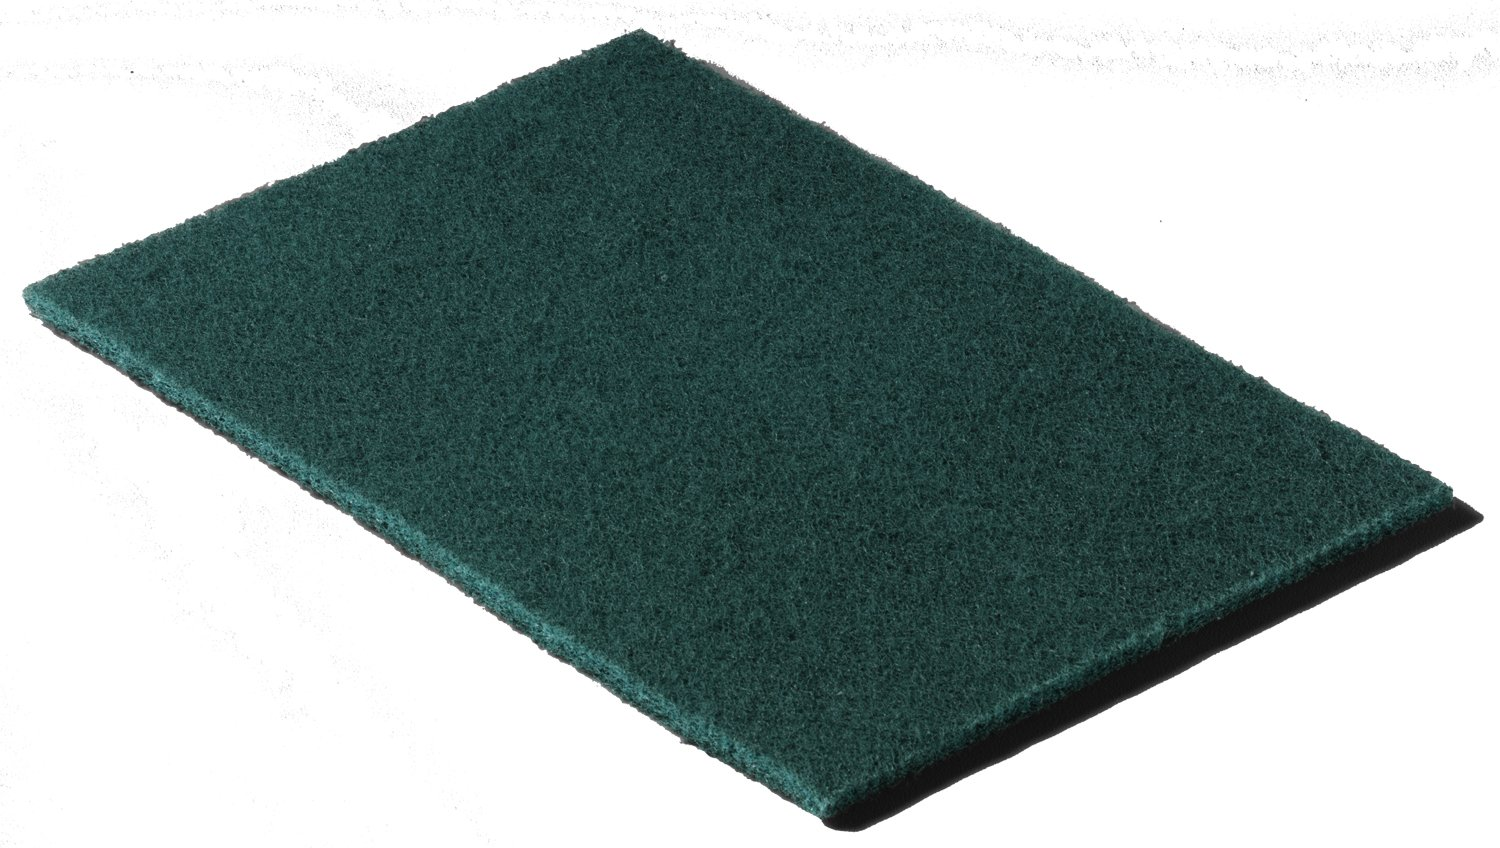 Scotch-Brite General Purpose Commercial Scour Pad 6'' x 9'', 96CC (6 Packs of 10)